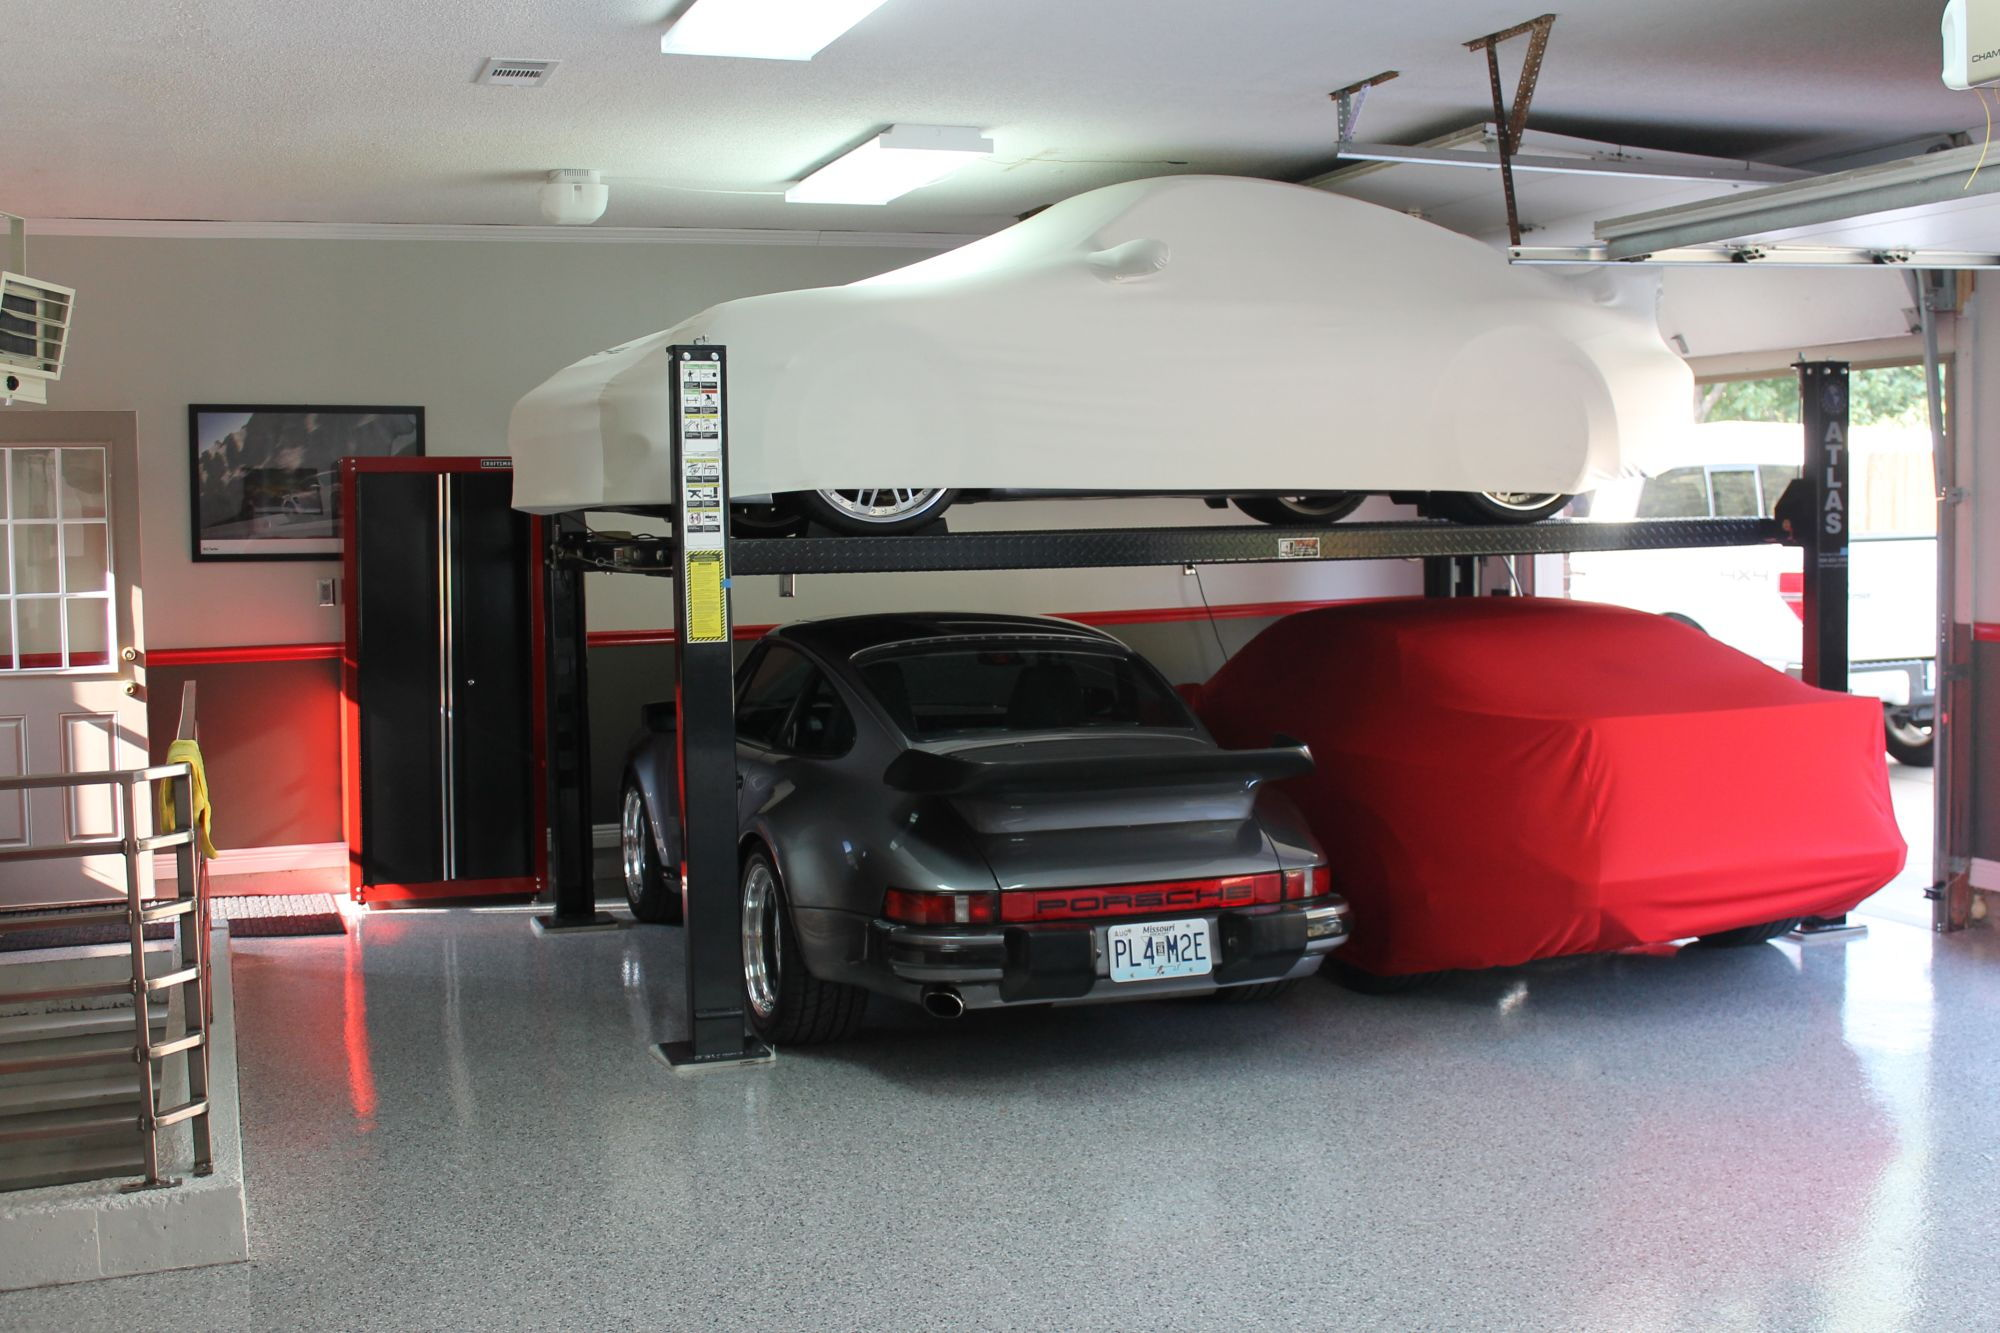 Guys with 4 post car lifts in their garages i have 4 car garage